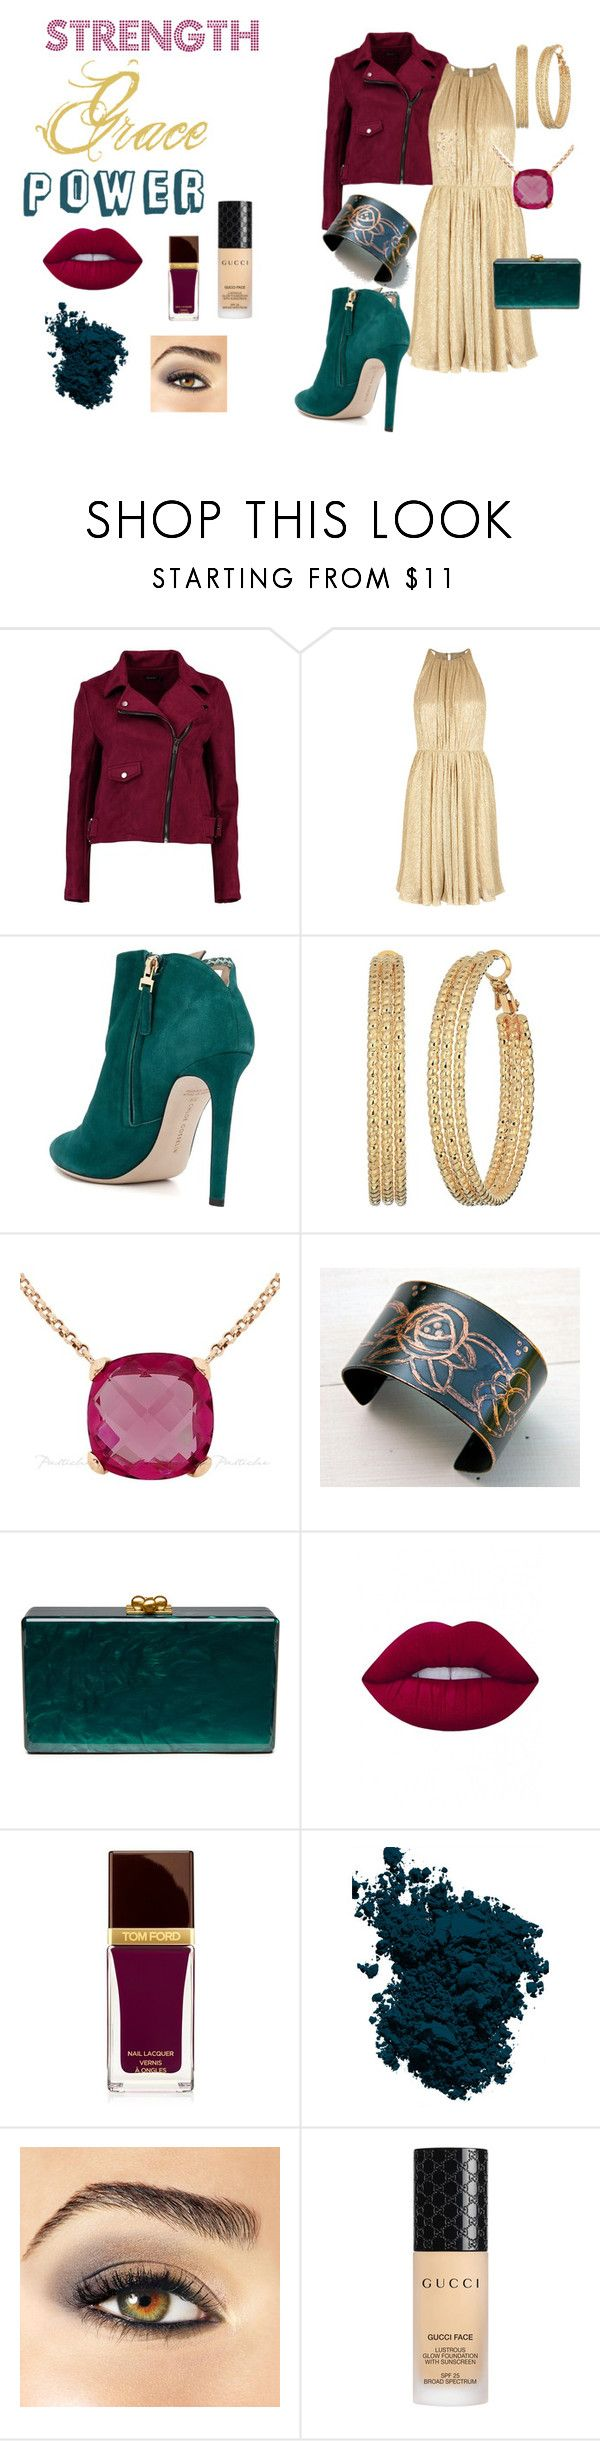 """""""Her Strenghts"""" by ktree5 ❤ liked on Polyvore featuring Boohoo, Halston Heritage, Chloe Gosselin, GUESS, Edie Parker, Lime Crime, Tom Ford, Laura Mercier, Avon and Gucci"""